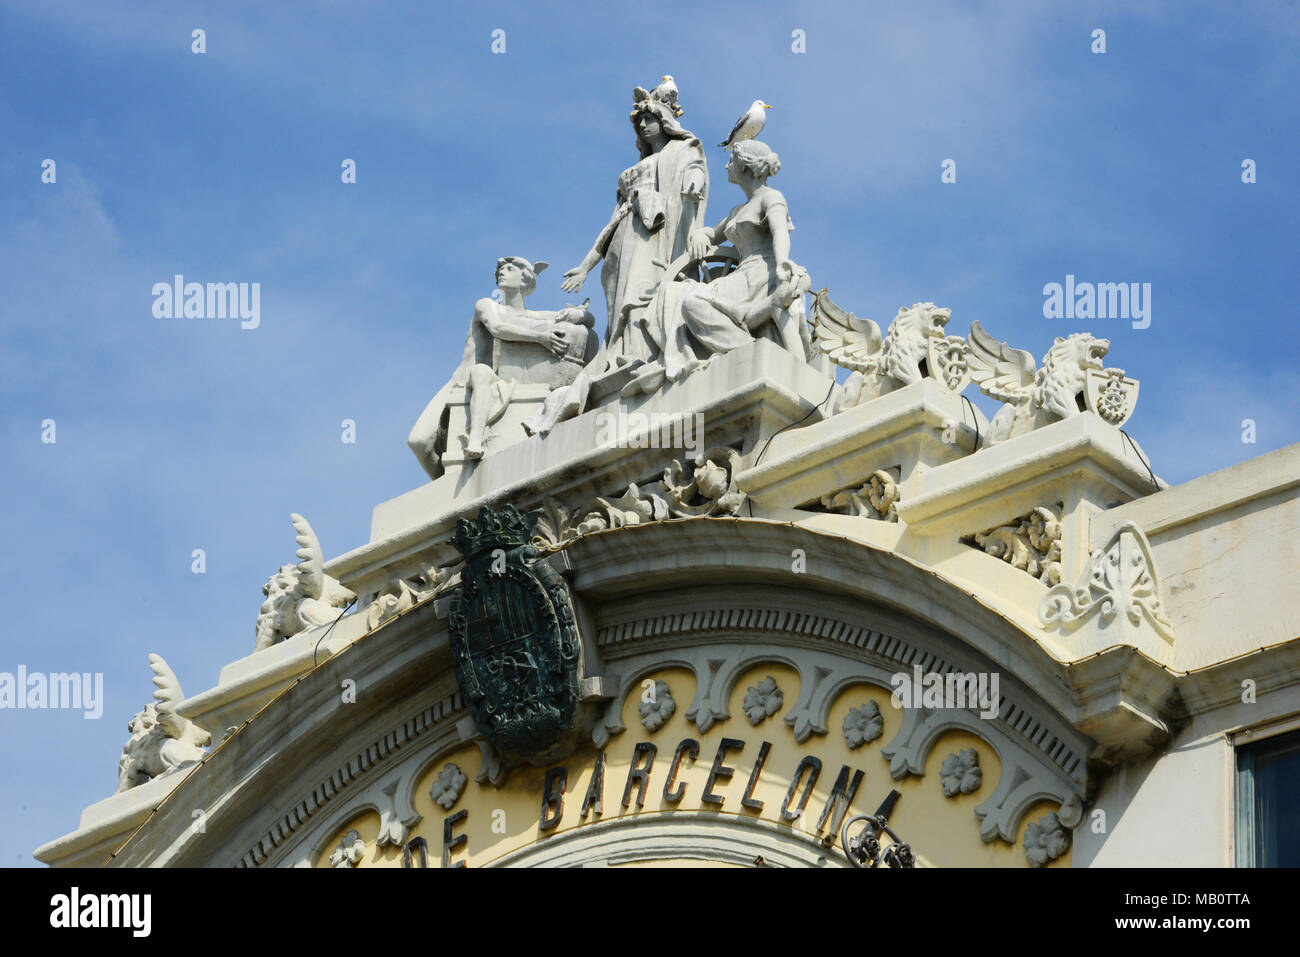 Detail of the Port of Barcelona building, Catalonia, Spain - Stock Image